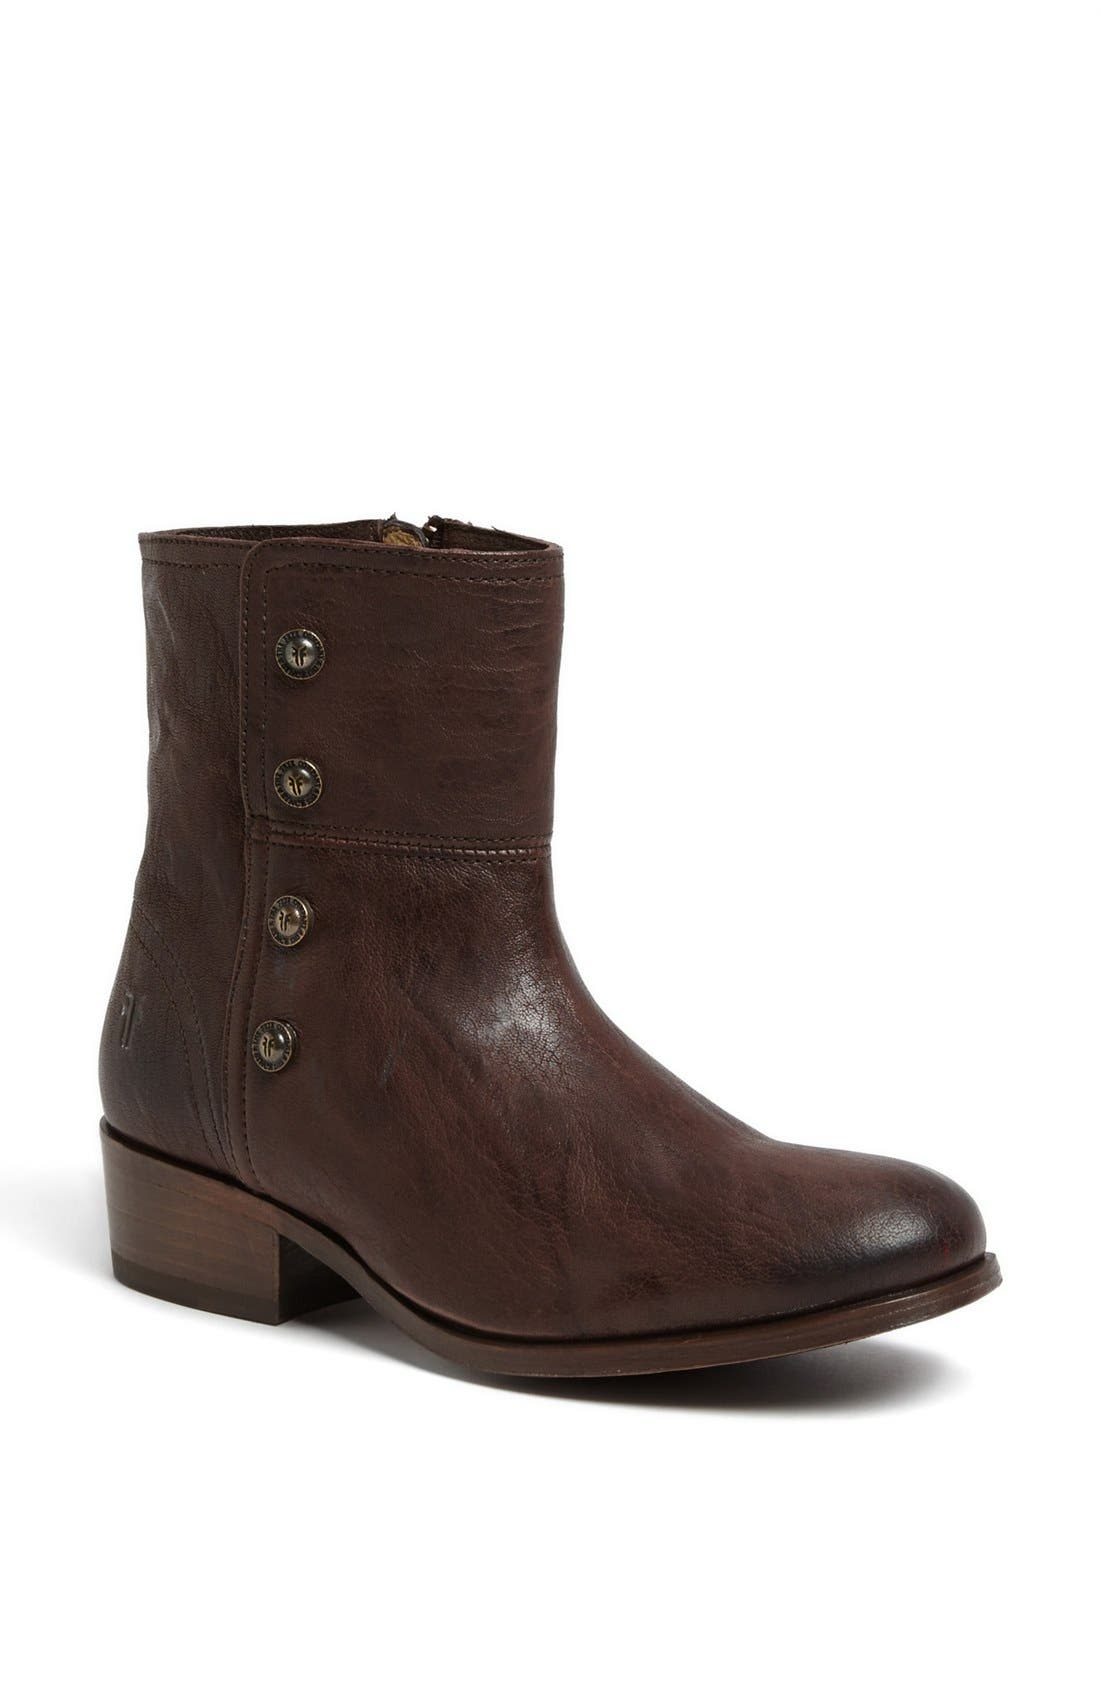 Main Image - Frye 'Lynn' Military Bootie